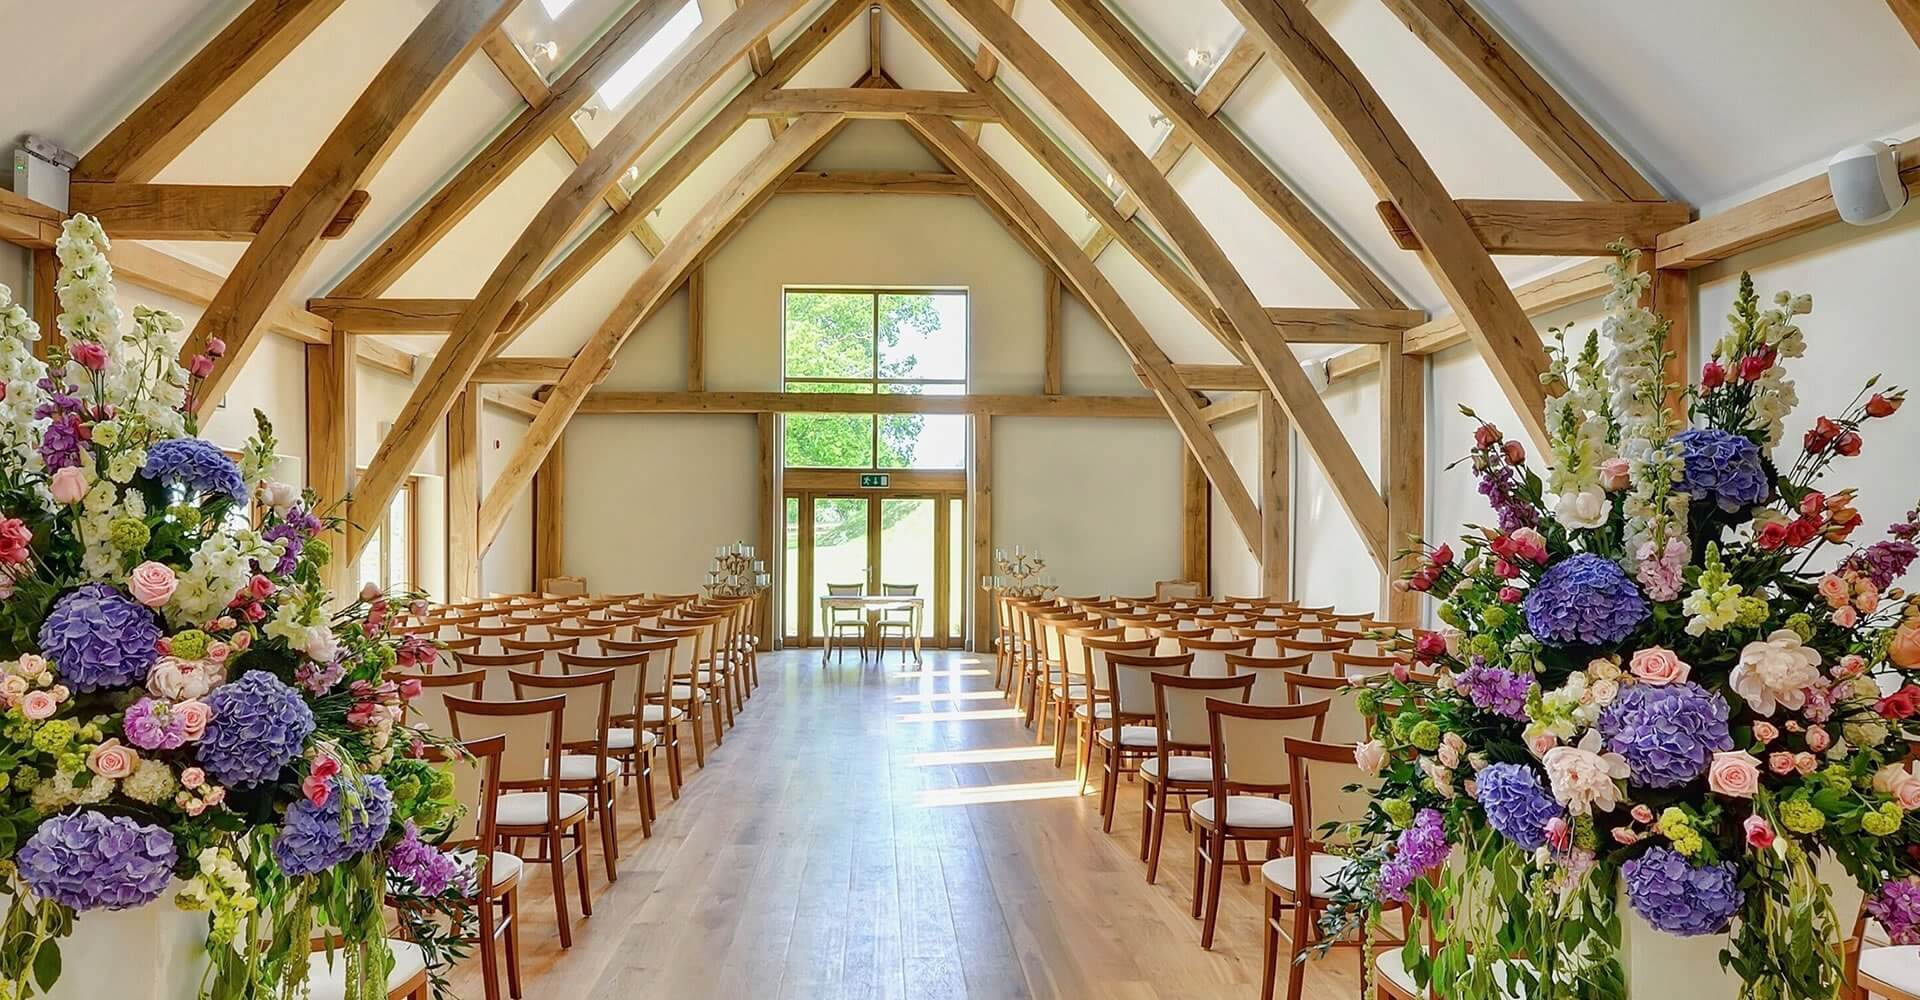 Easton Grange wedding ceremony barn